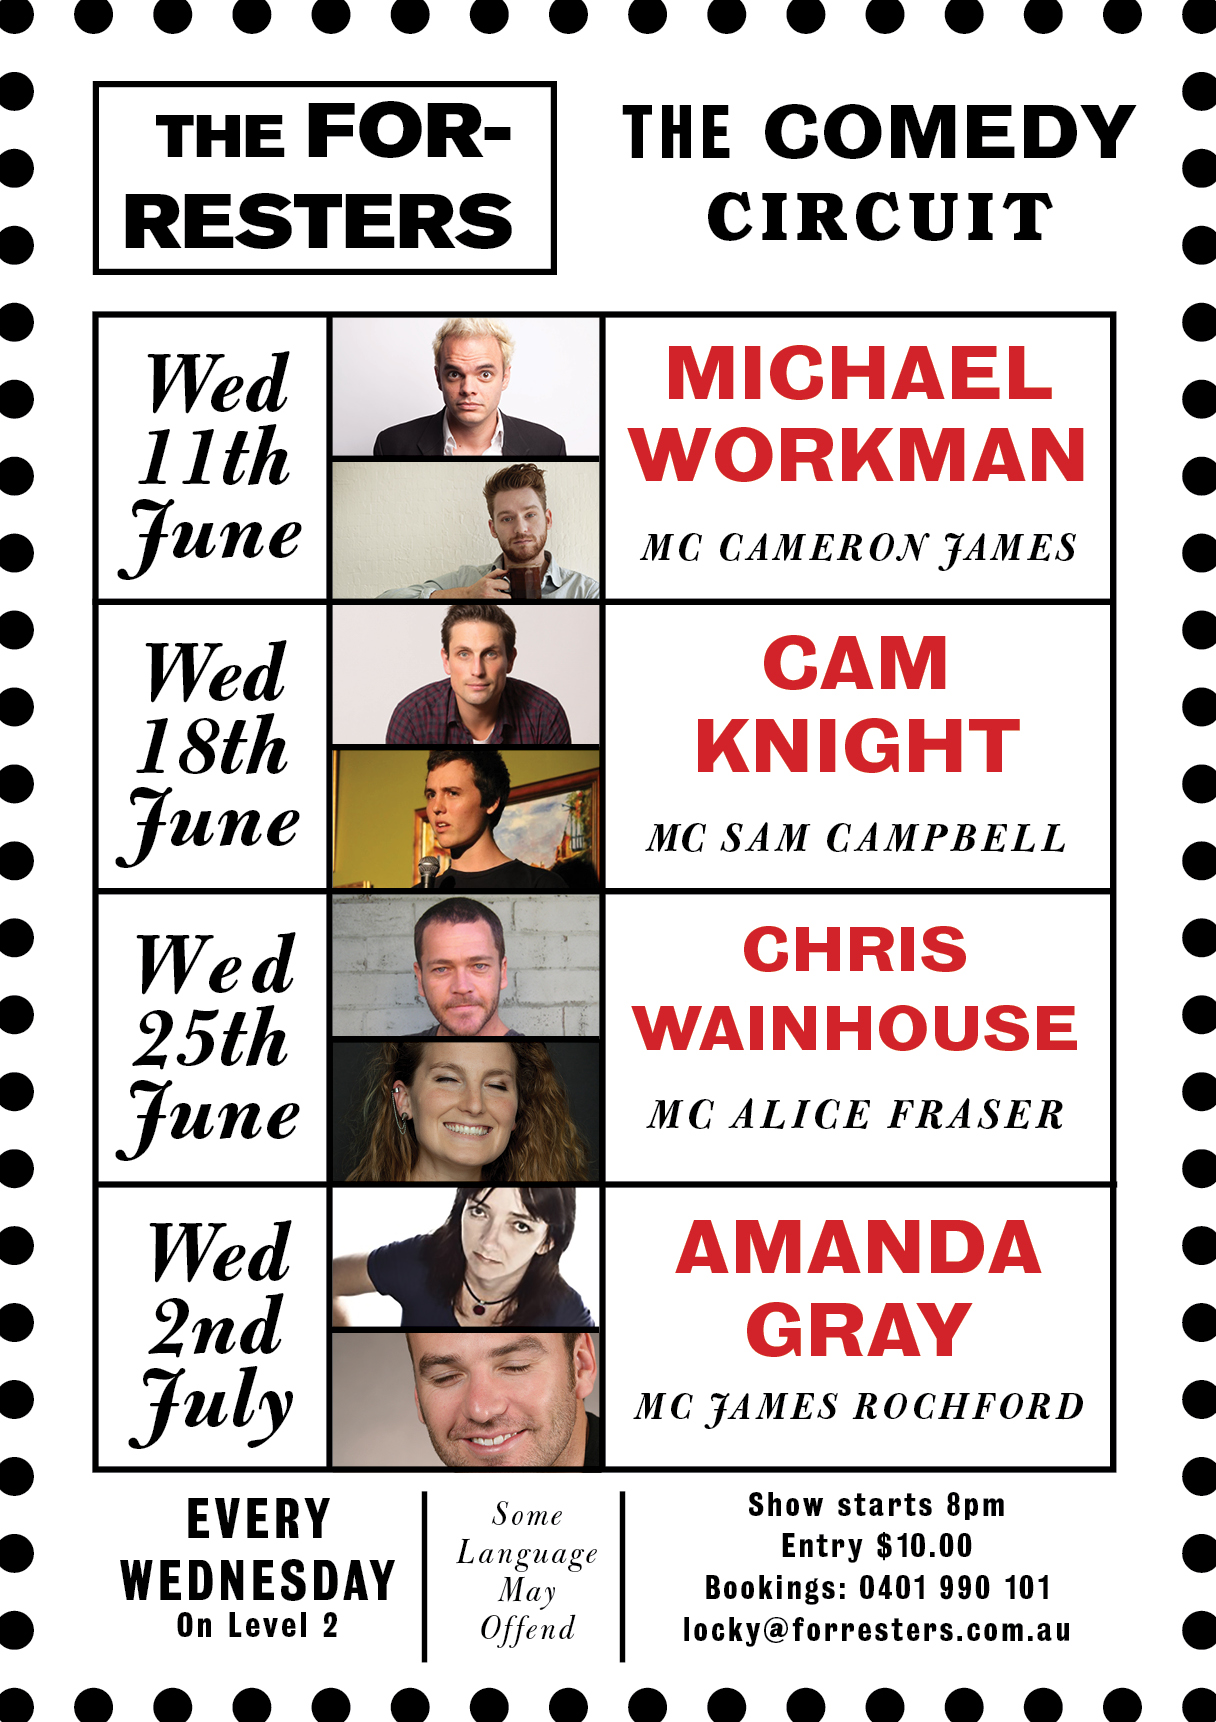 TheForresters_Comedy_JUNE2014_A1